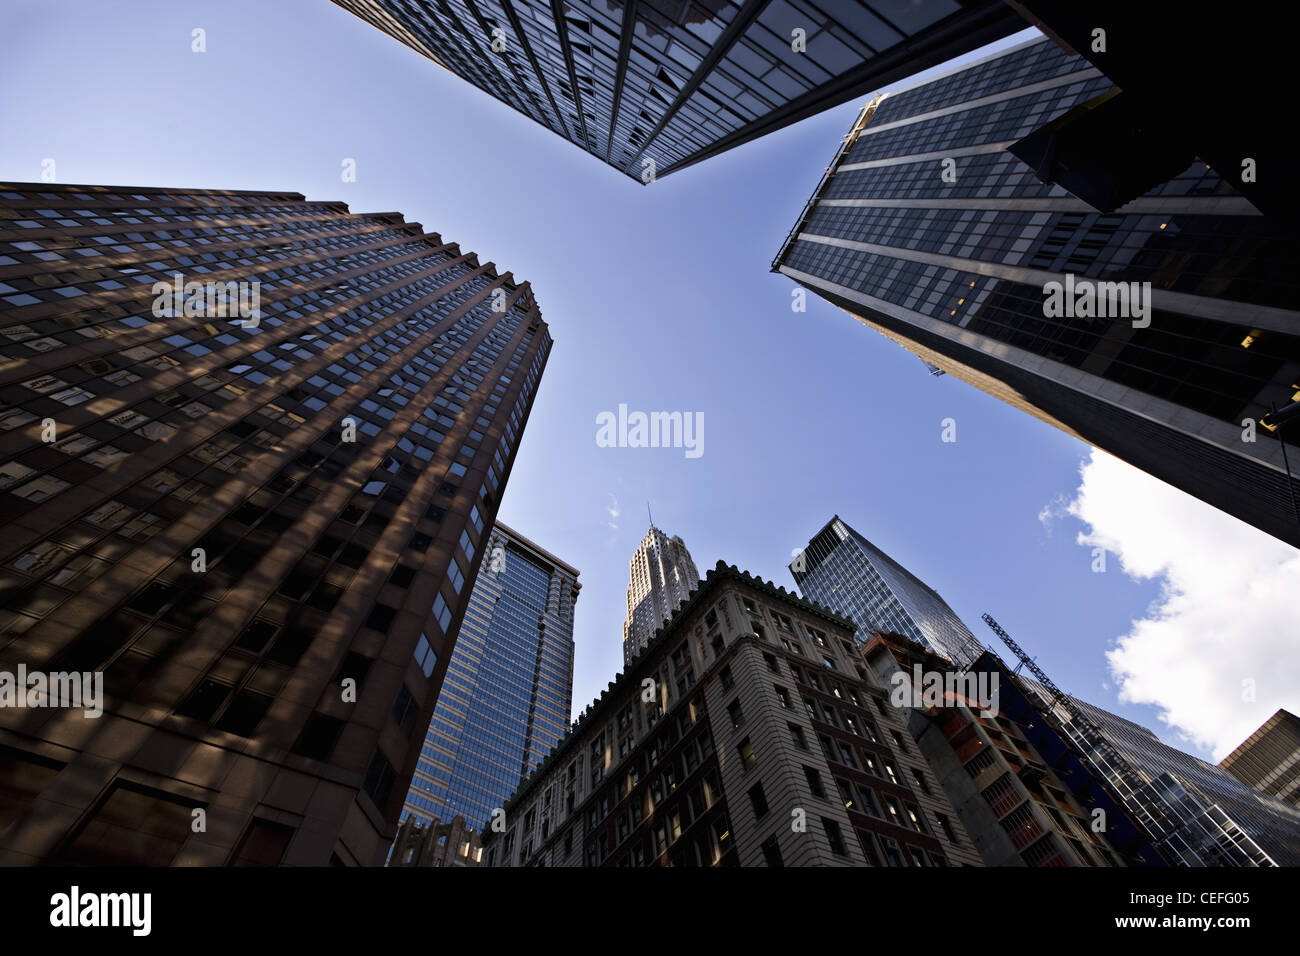 Low angle view of Manhattan skyscrapers - Stock Image